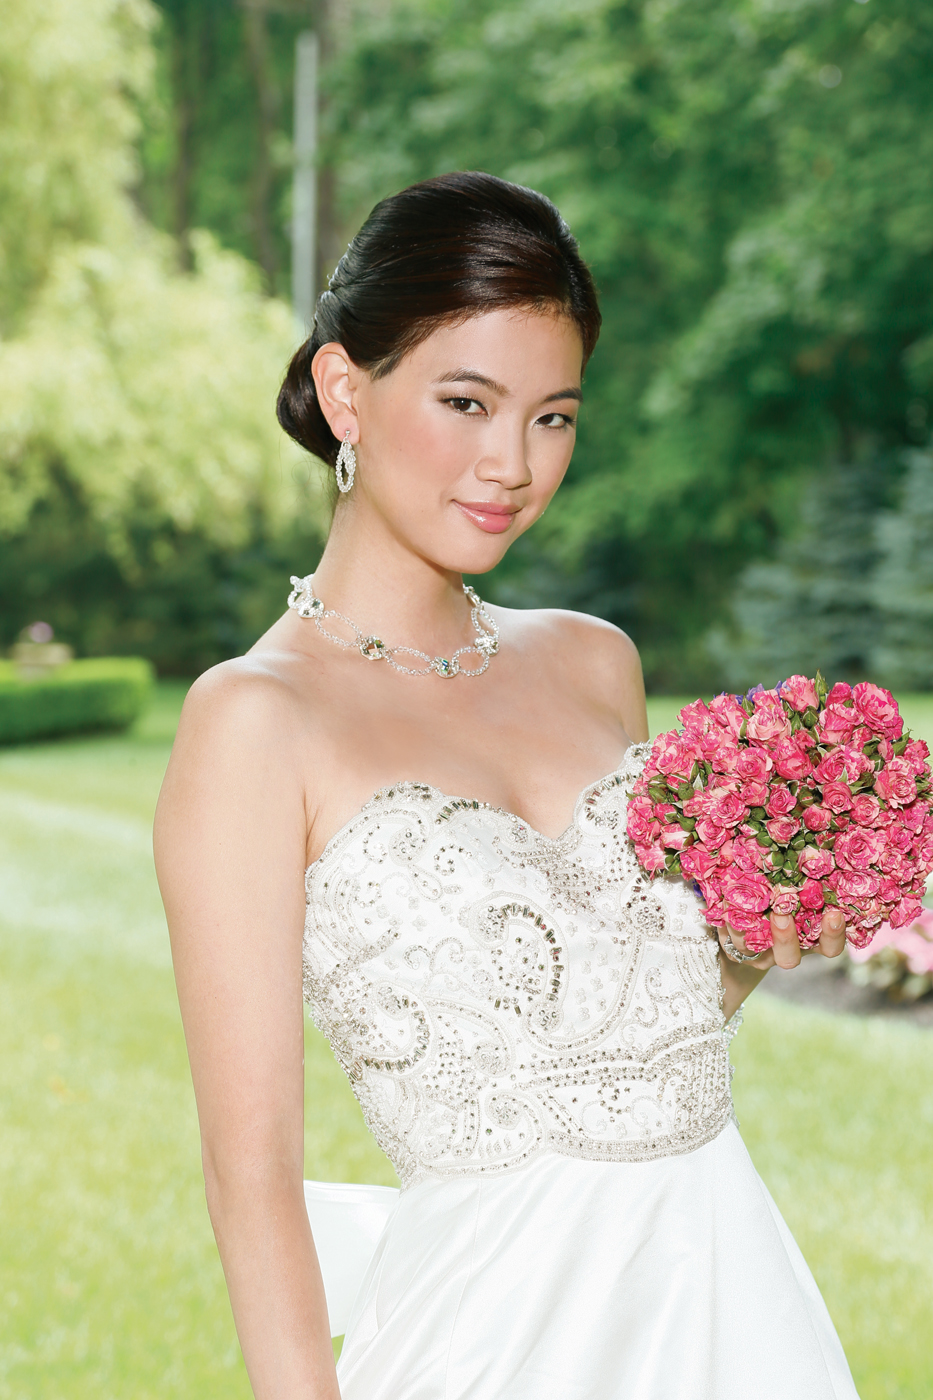 Wedding Day Hair and Makeup Tips from Beauty Entourage